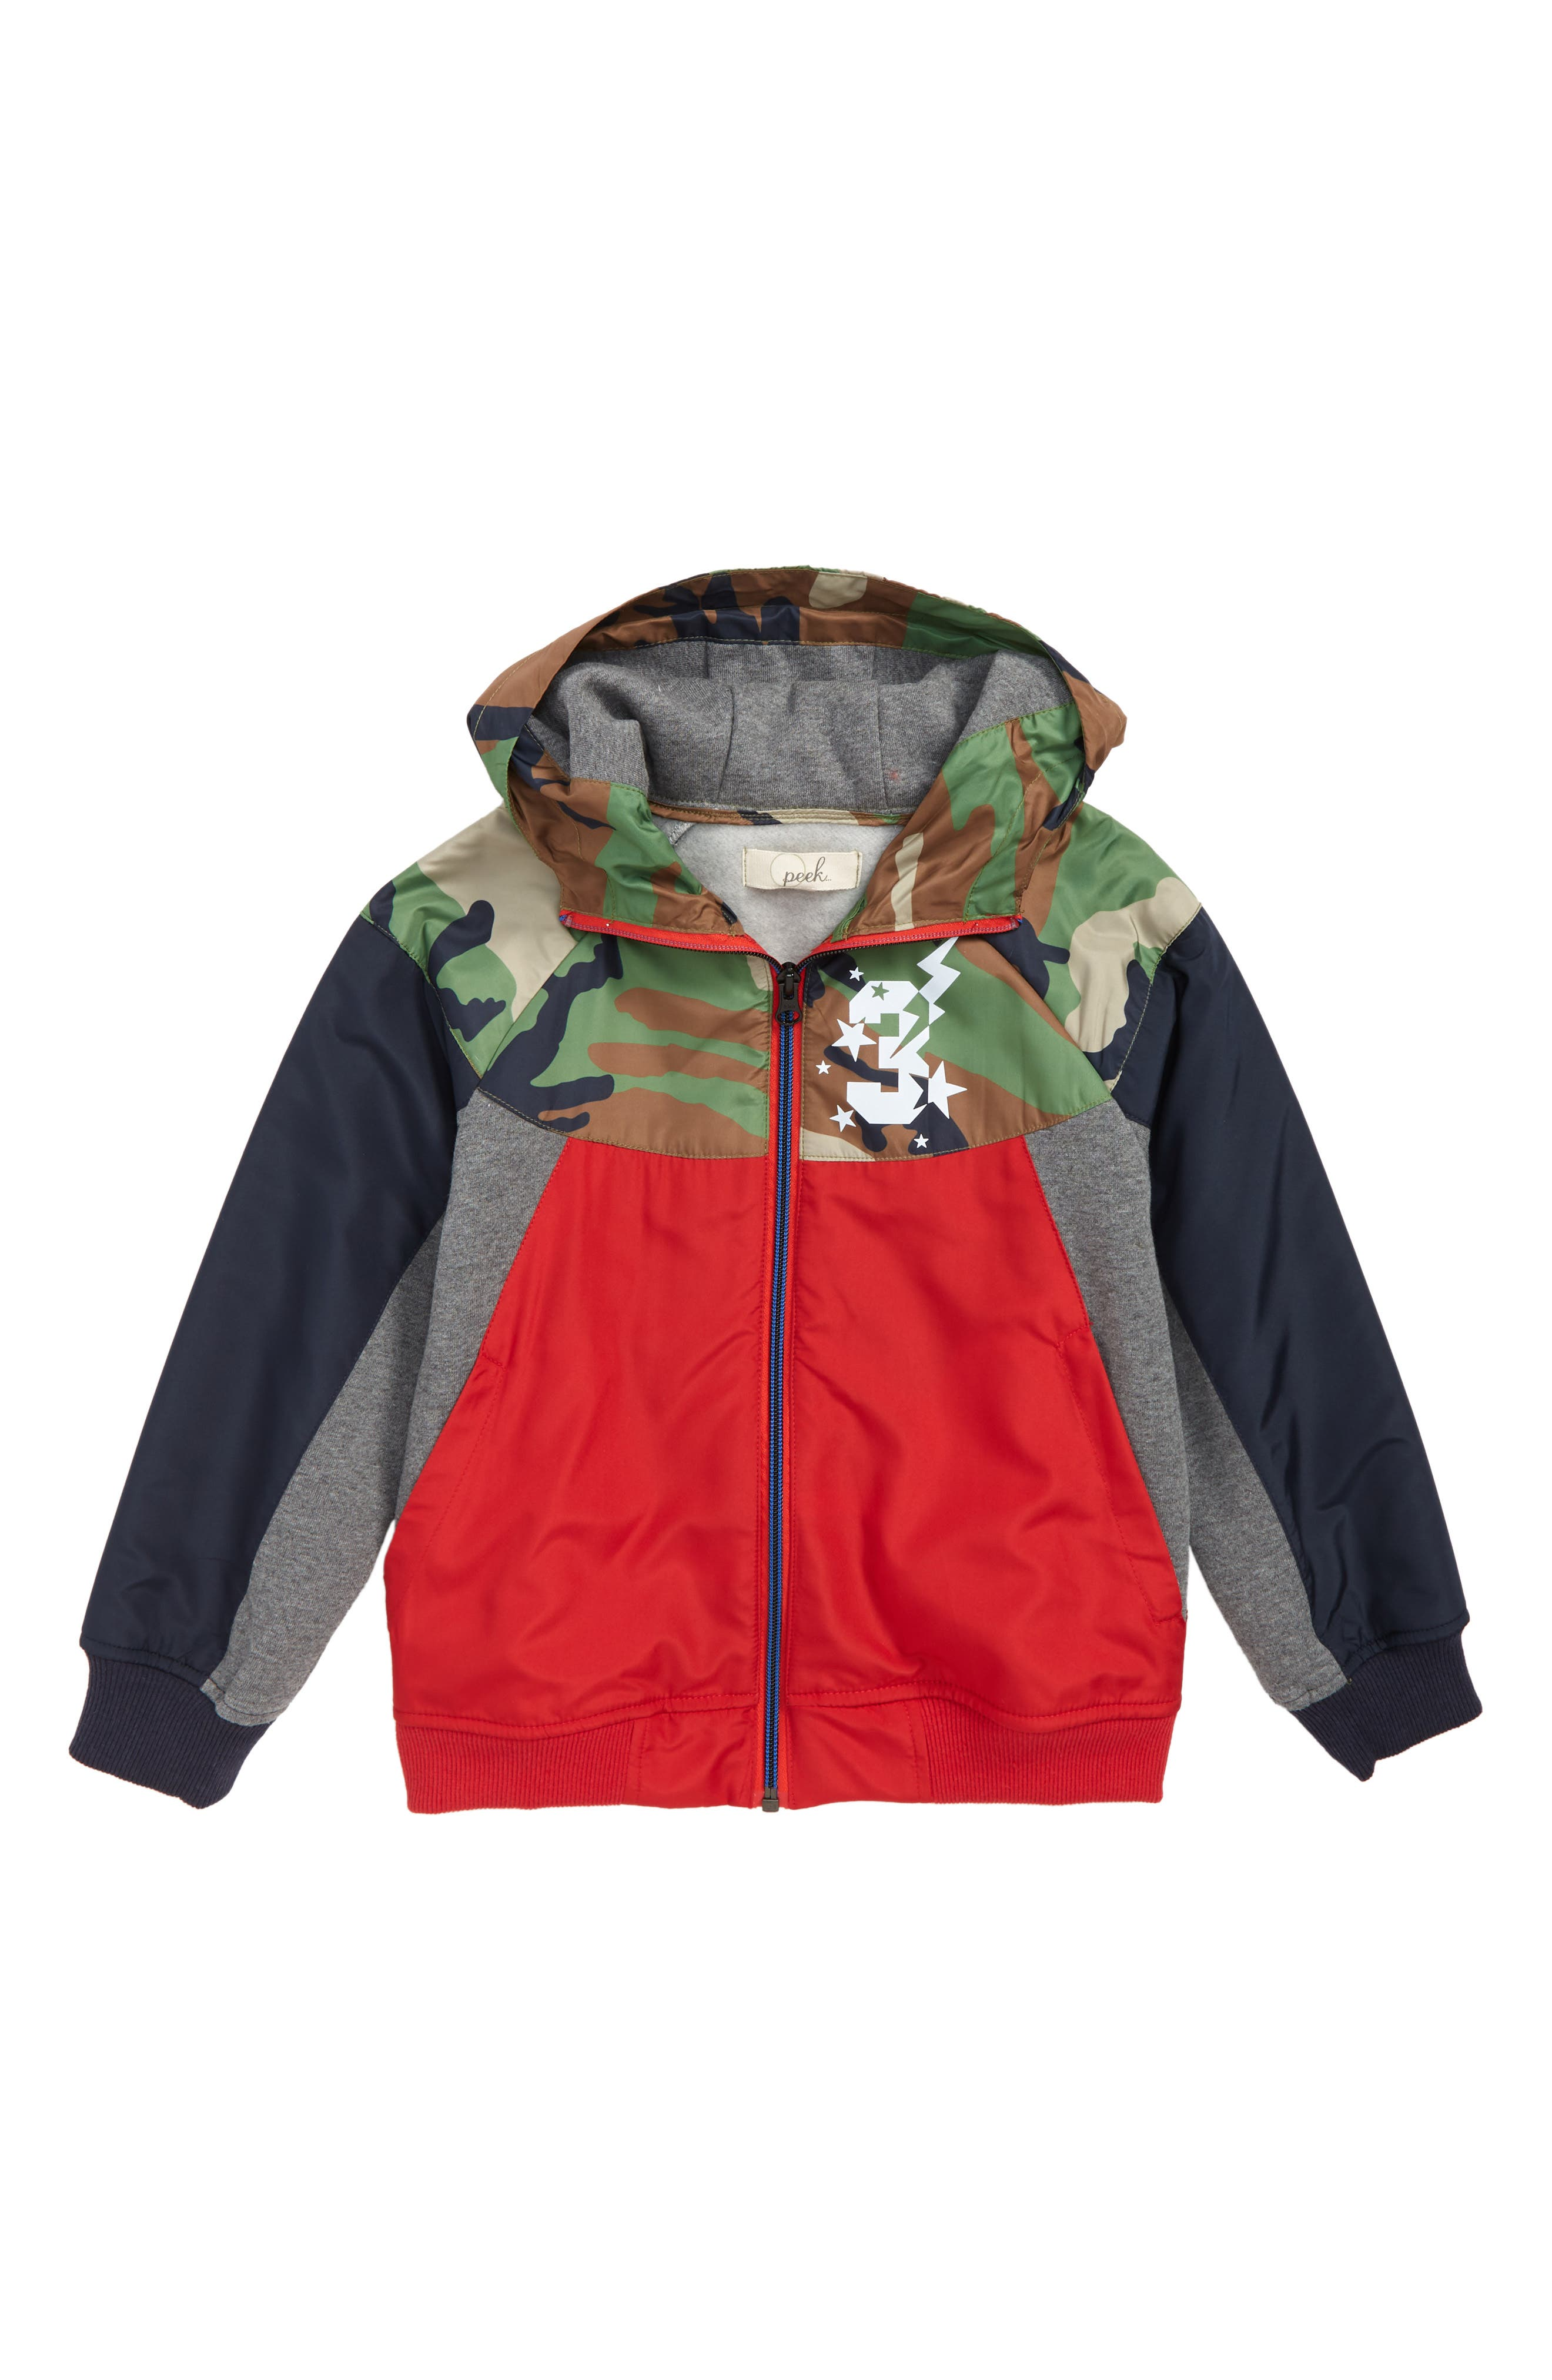 Ryder Hoodie,                             Main thumbnail 1, color,                             NAVY